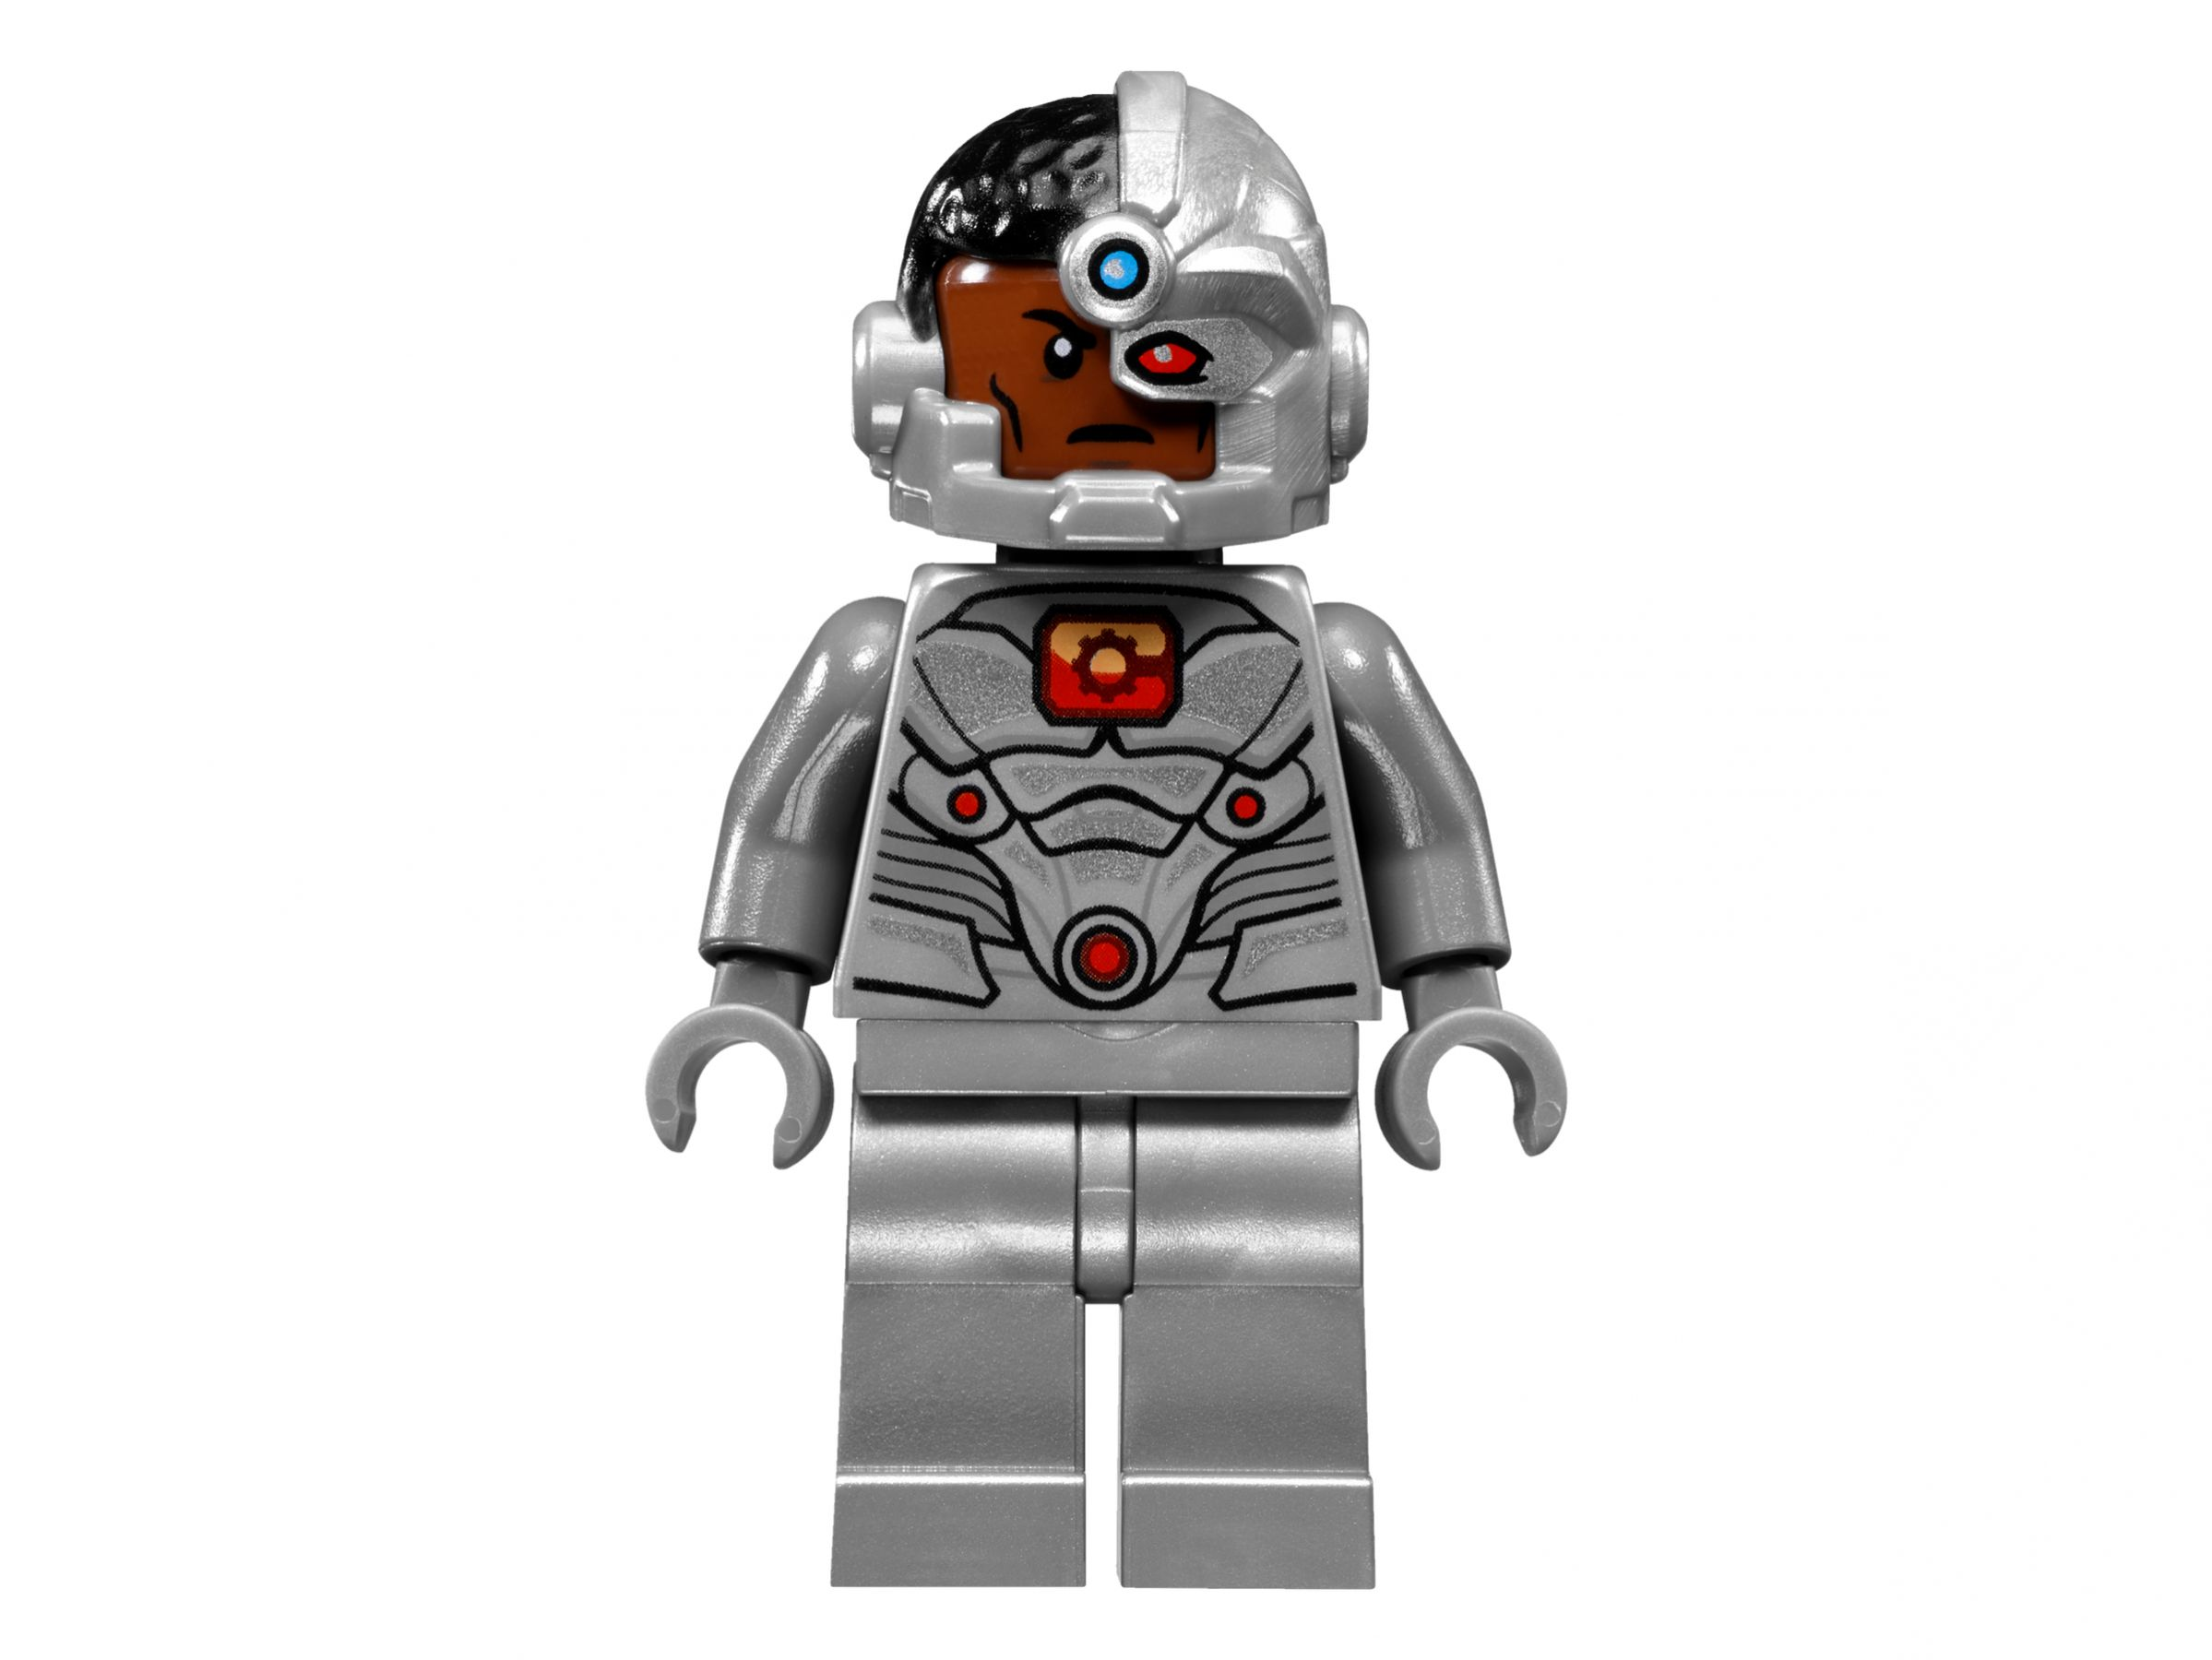 LEGO Super Heroes 76098 Speed Force Freeze Verfolgungsjagd LEGO_76098_alt7.jpg